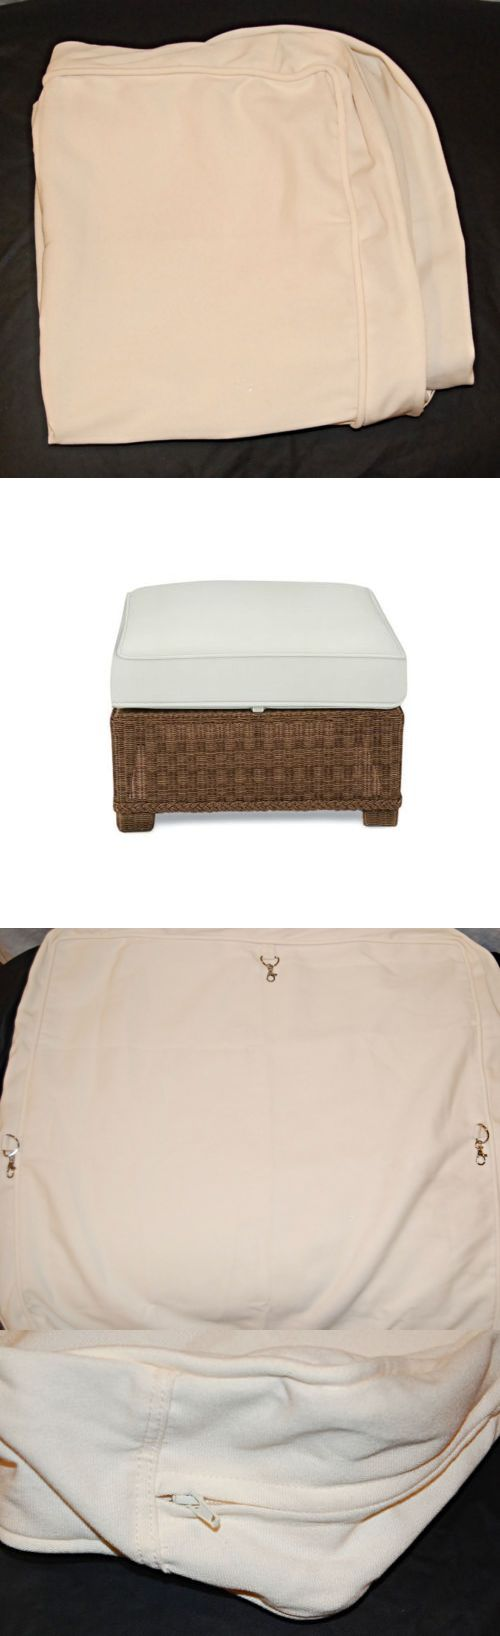 Outdoor Furniture Covers 177031: Pottery Barn Outdoor Palmetto Ottoman  Cushion Slipcover Natural 29 Square   Part 92